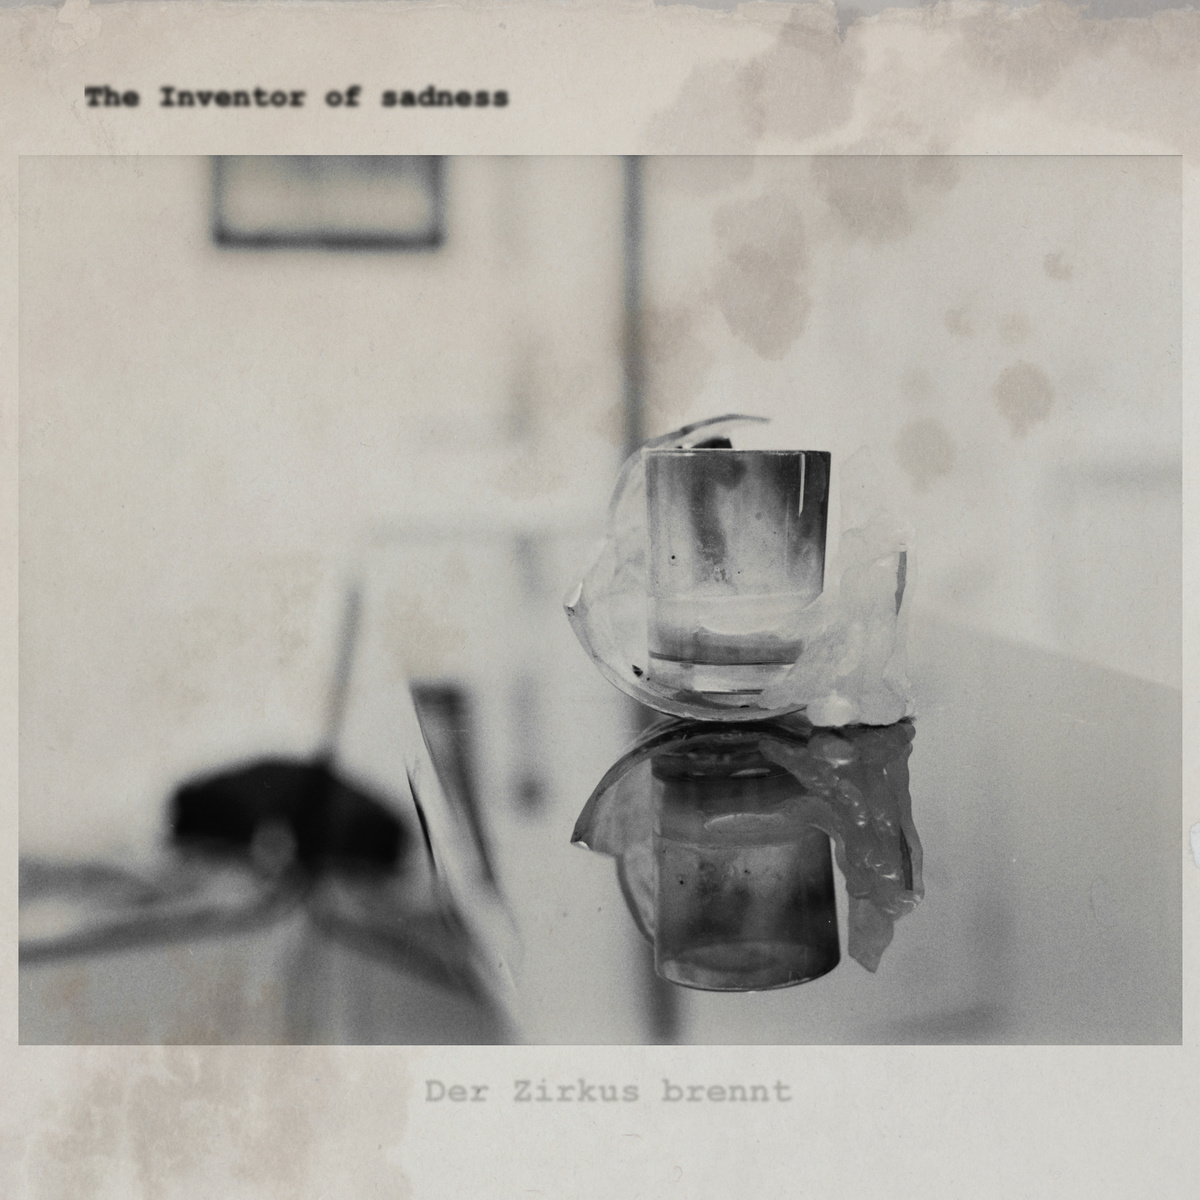 The Inventor of sadness - cover art by unevens